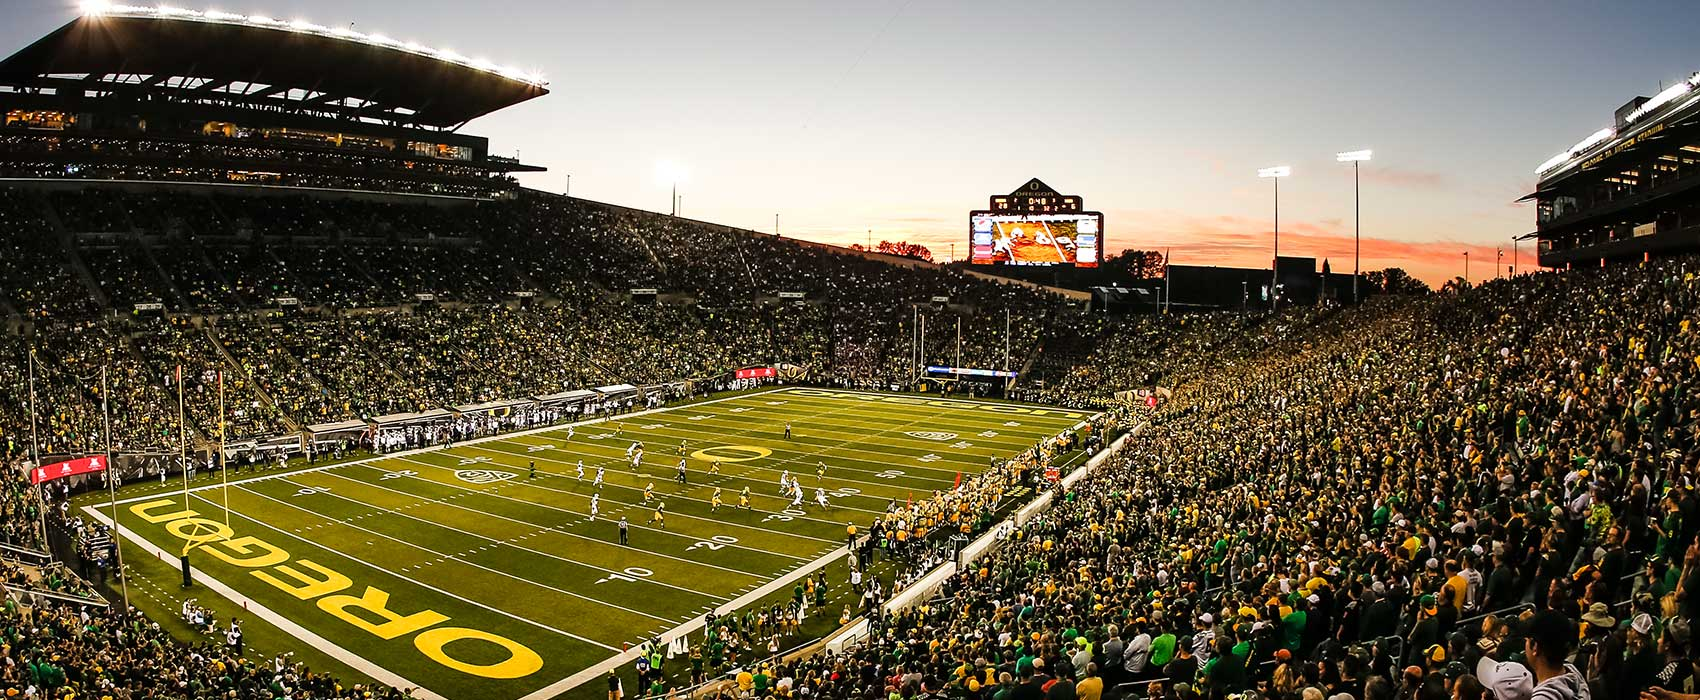 U Of Oregon Map.Autzen Stadium University Of Oregon Athletics